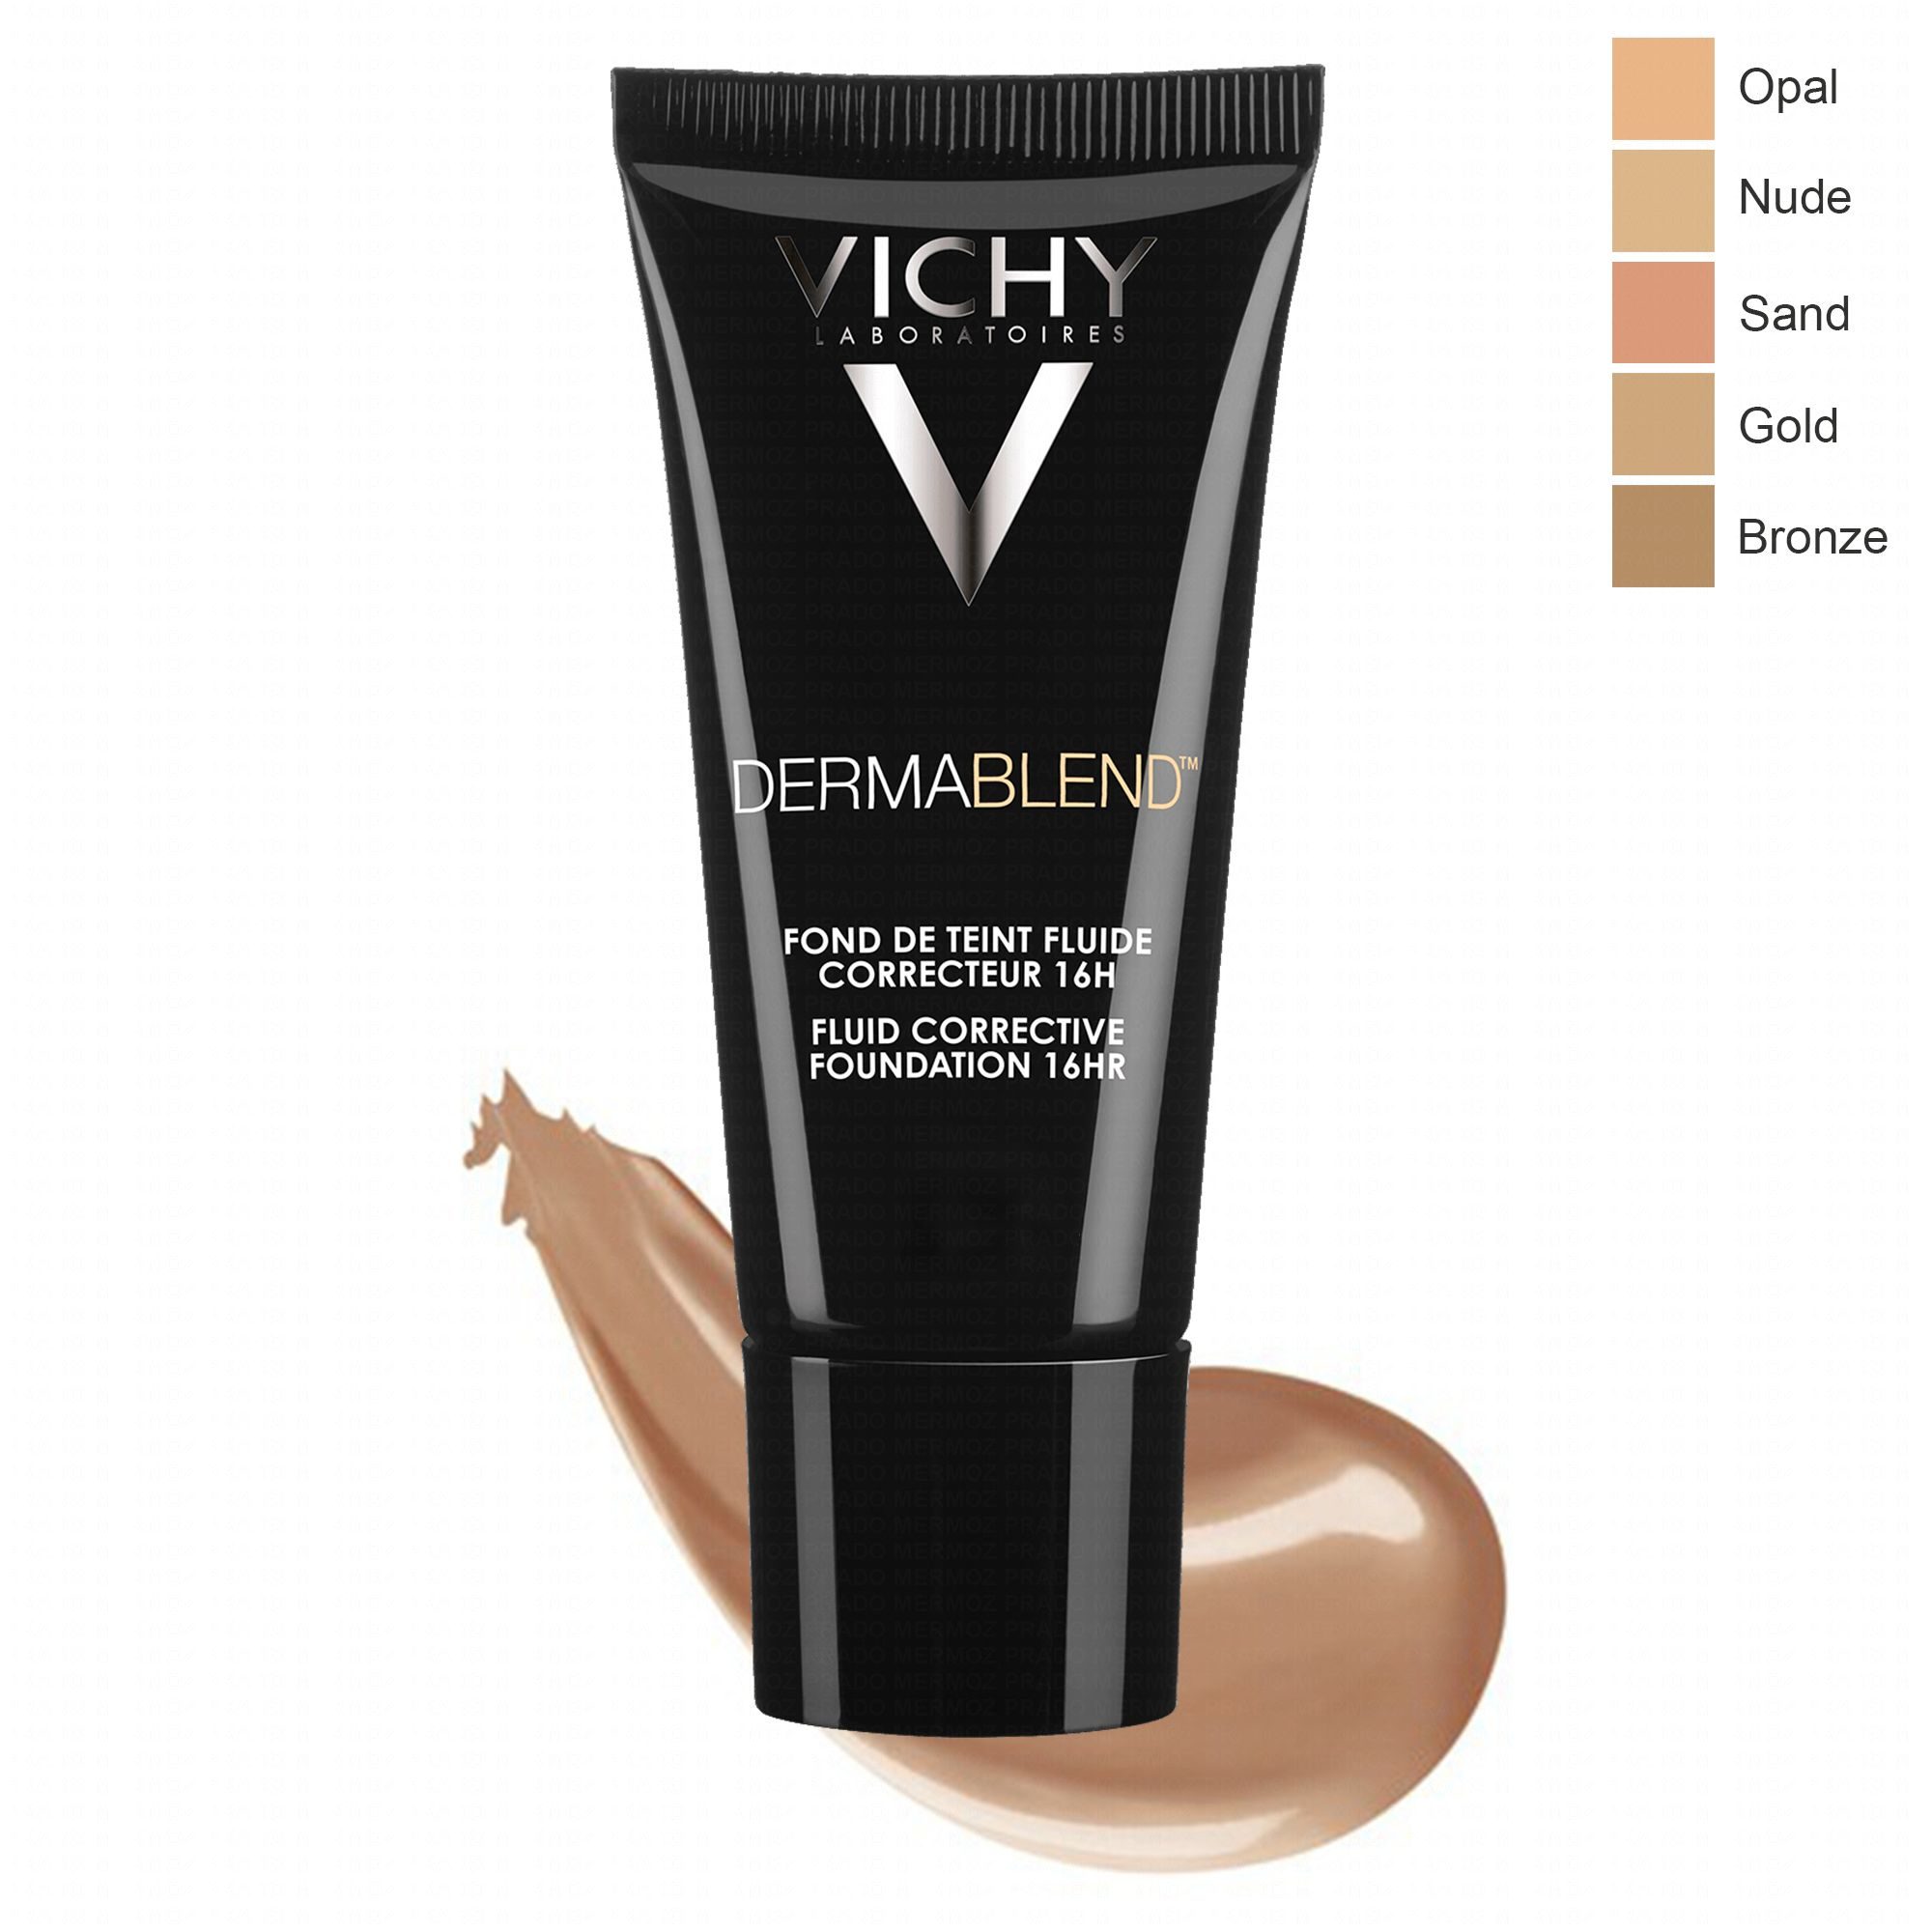 VICHY DERMABLEND CORRECTEUR FDT  Gold 45 - Διορθωτικό make-up με εύπλαστη υφή 30ml, SPF35